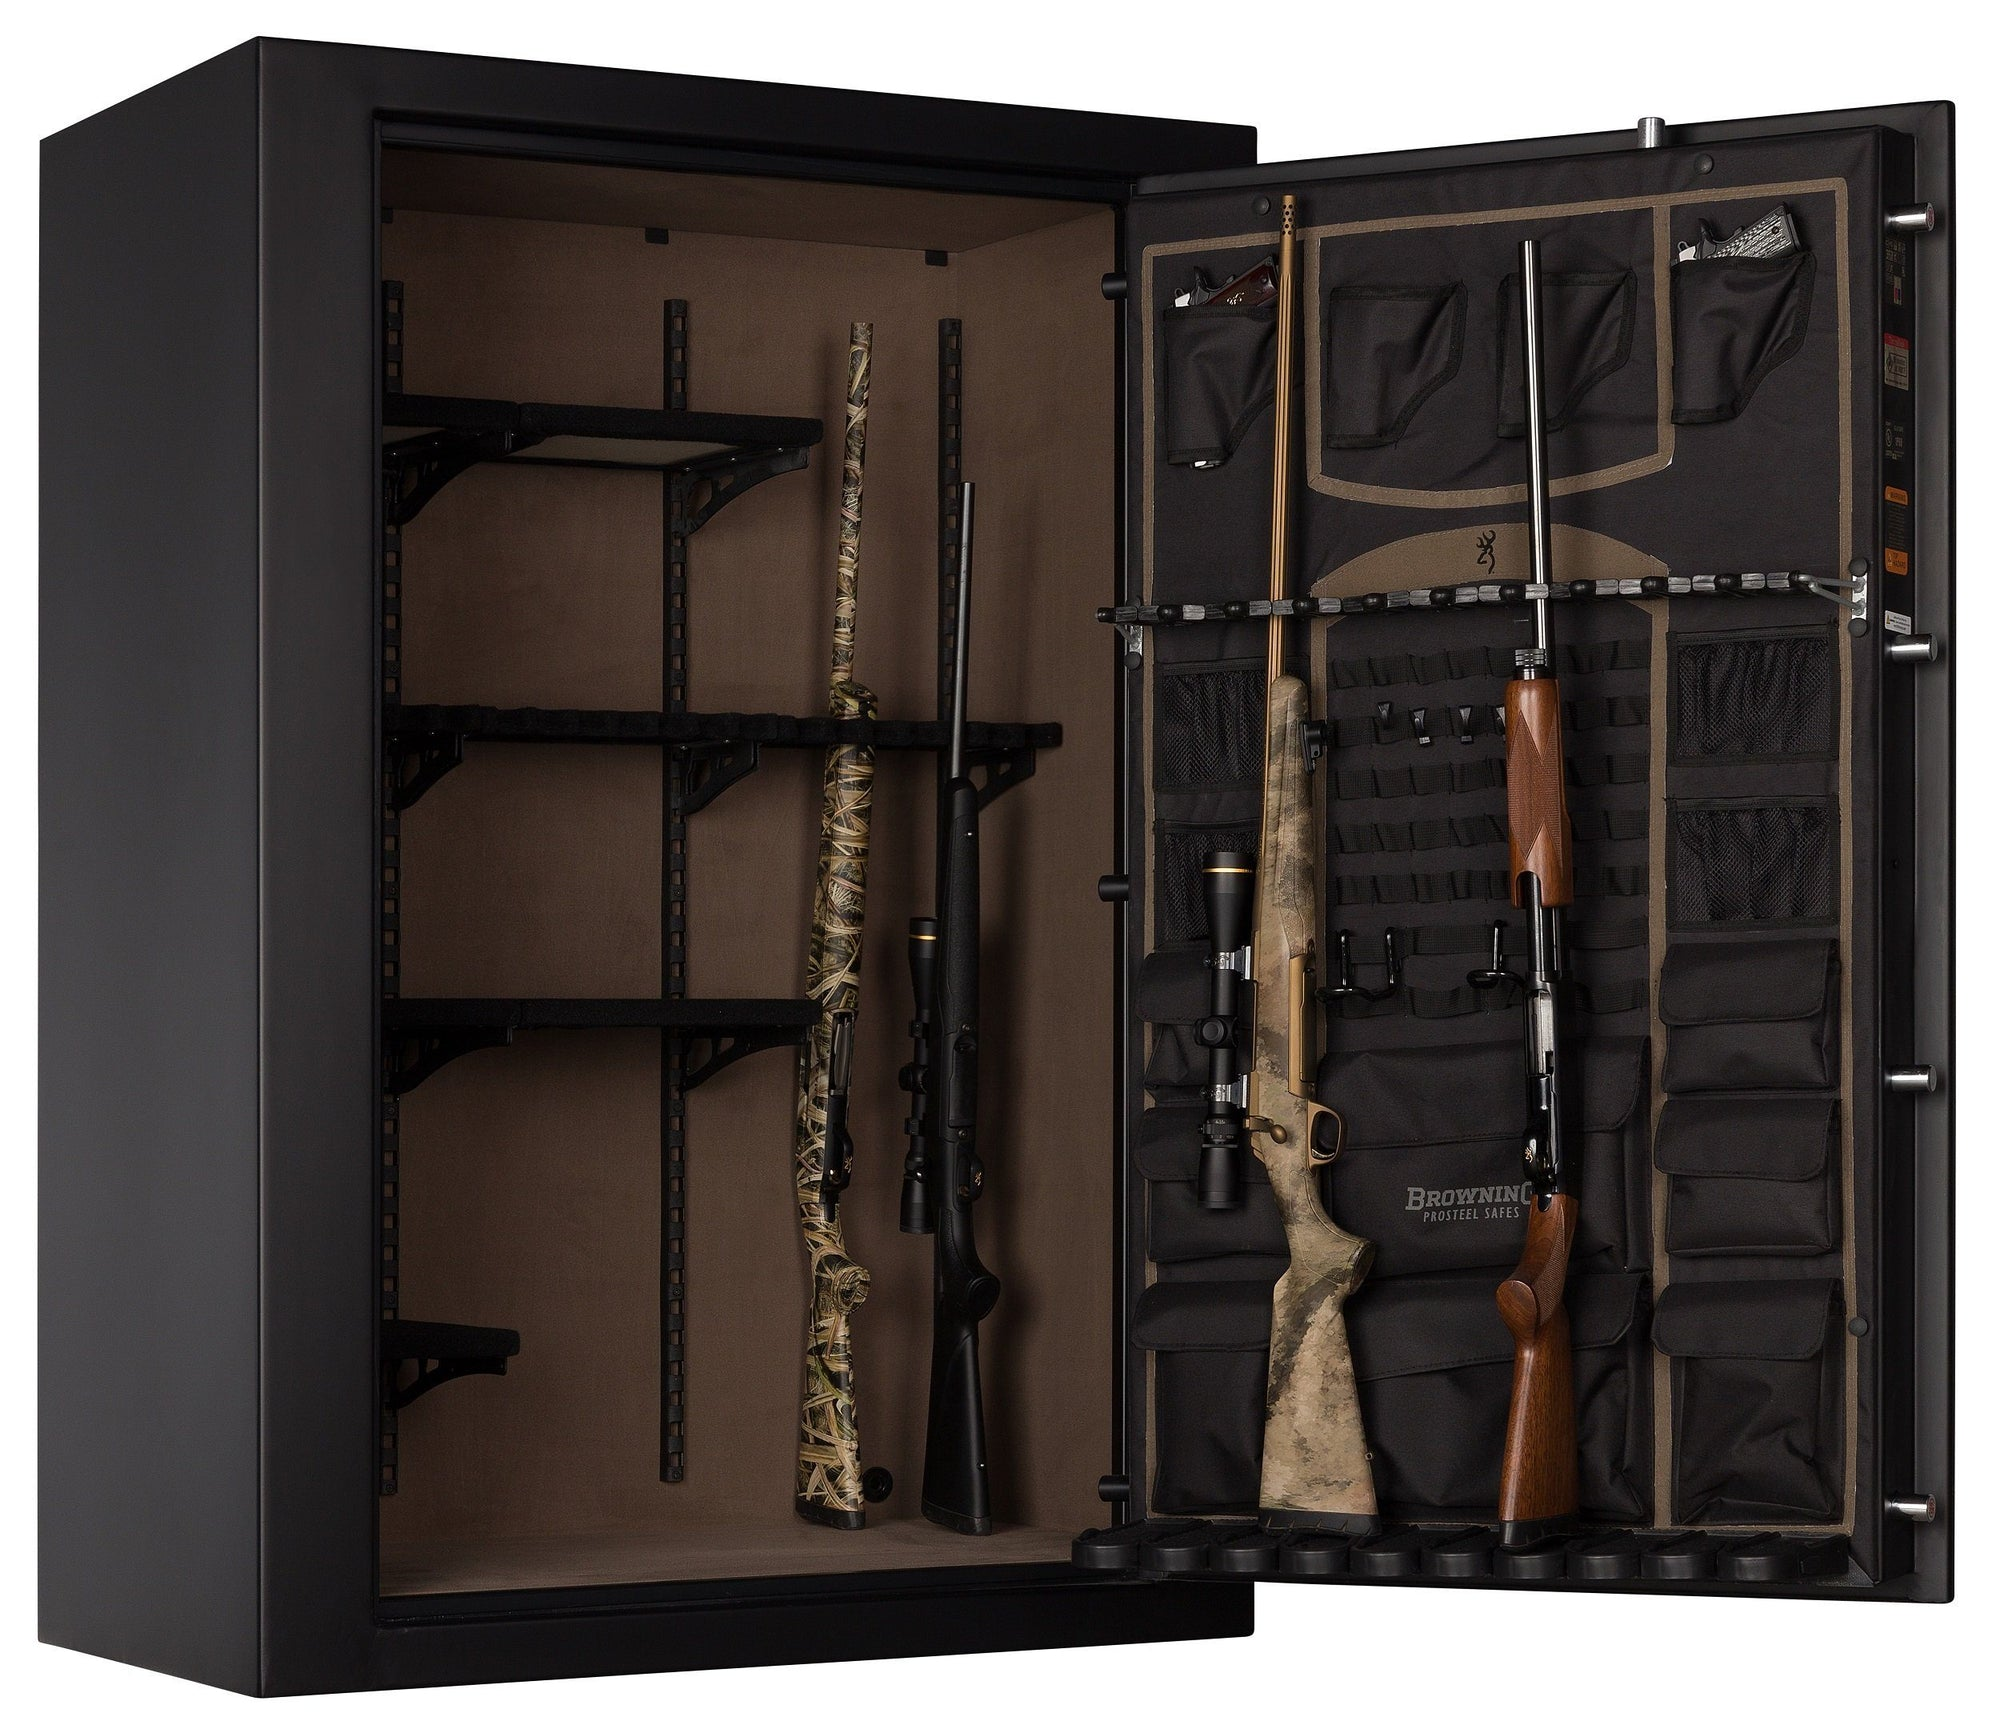 Browning MP49 Black Label Mark V Gun Safe Blackout